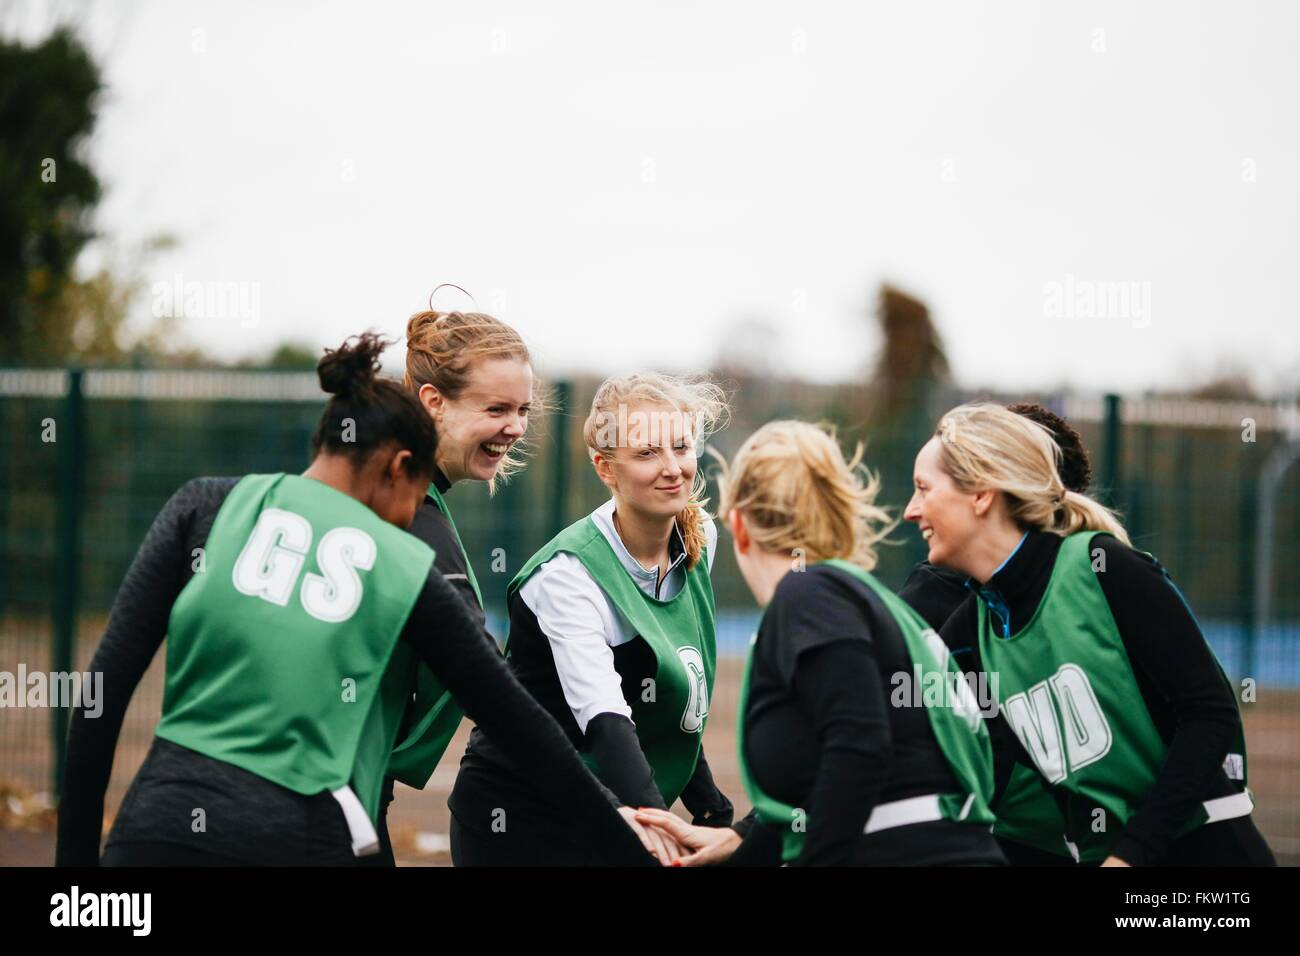 Female netball team shaking hands on netball court - Stock Image